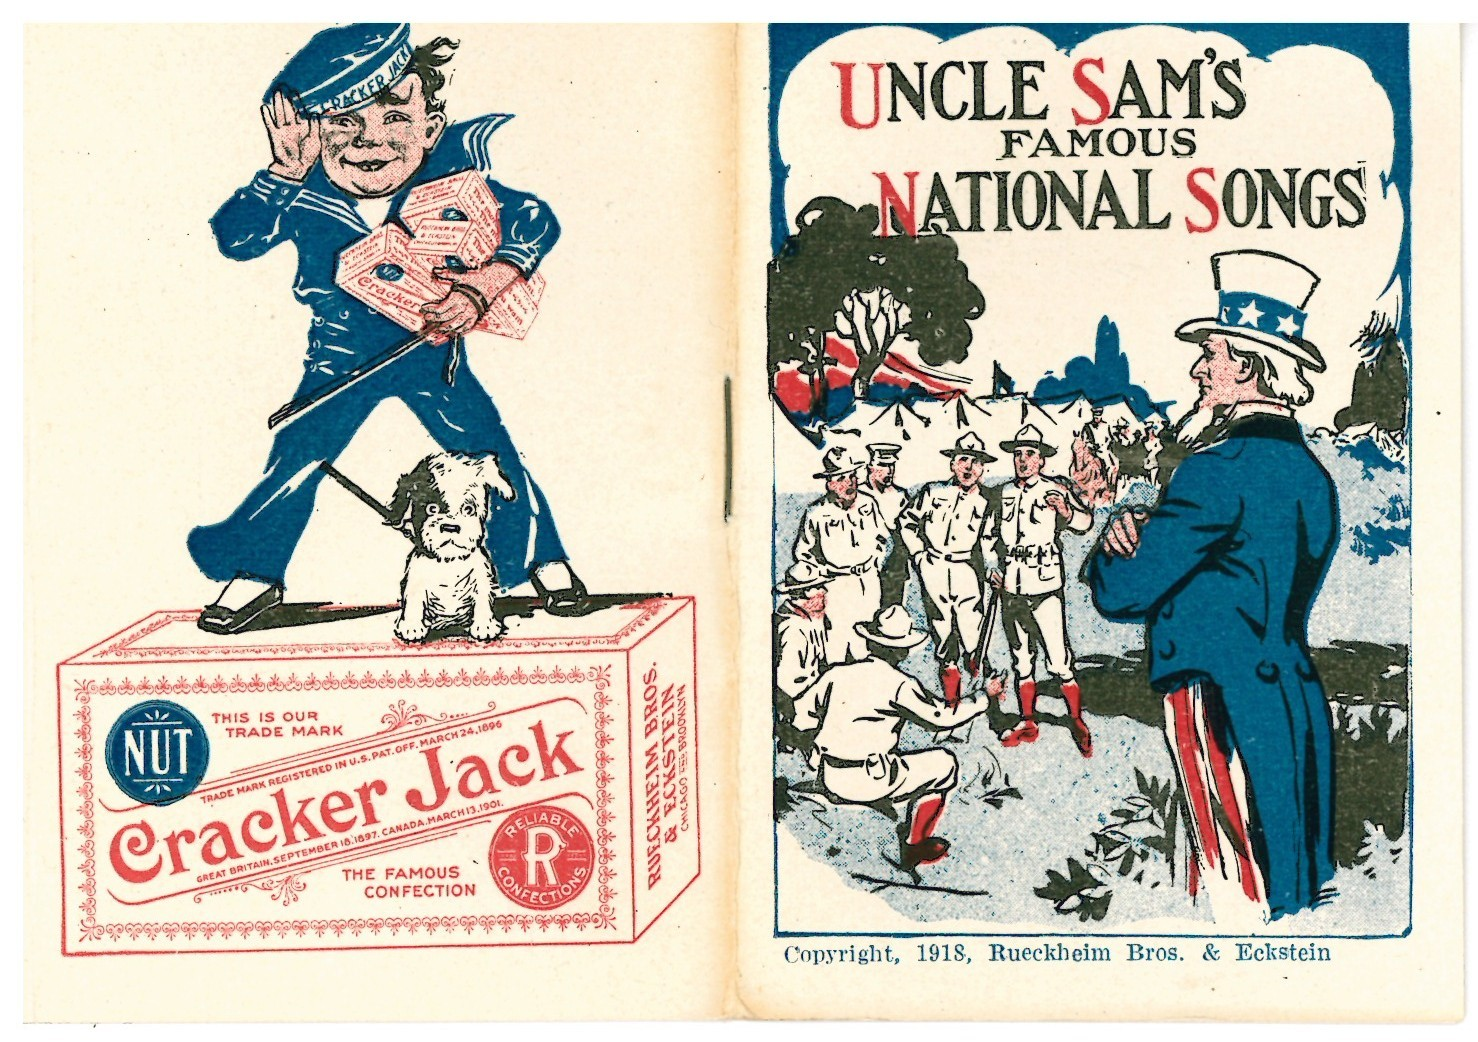 Uncle Sam's Famous National Songs